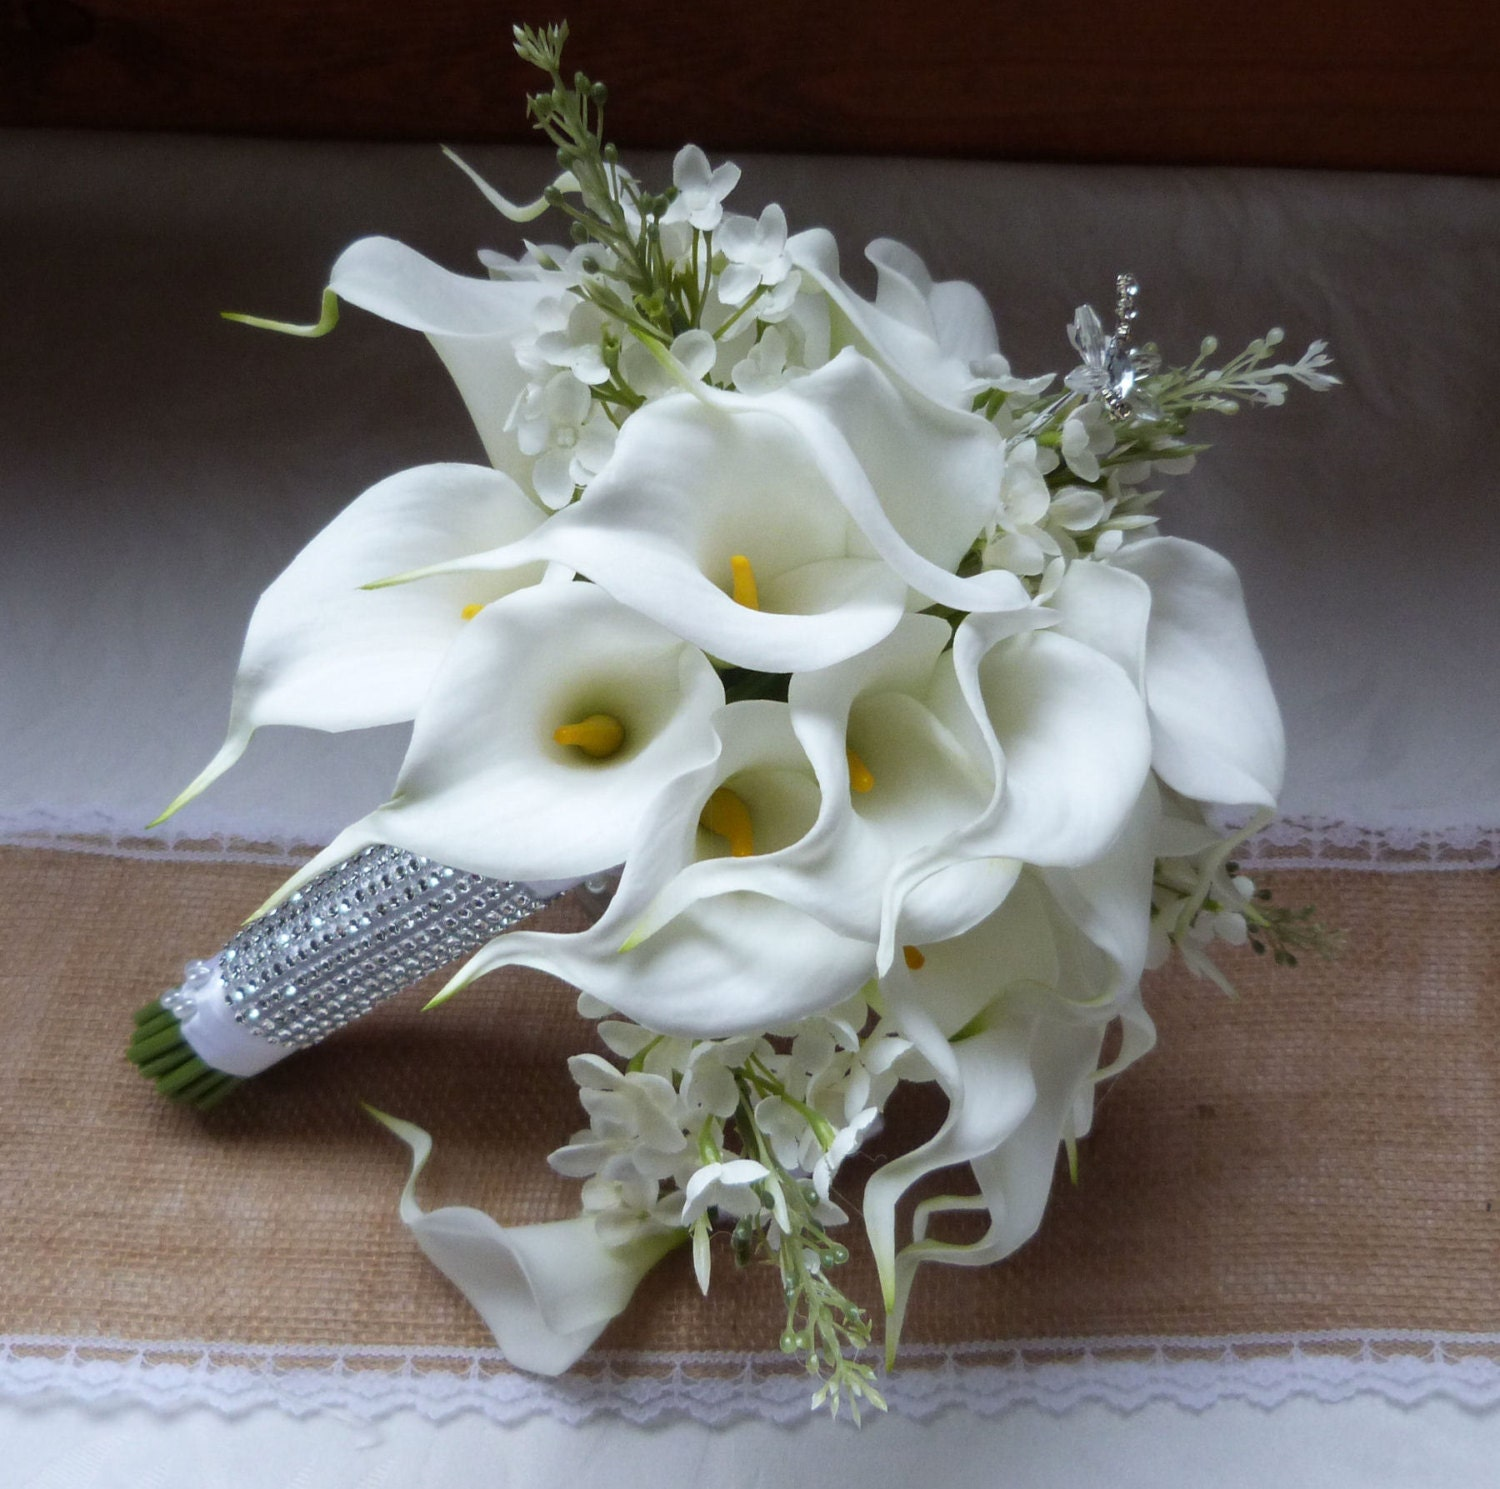 Lily Flower Wedding Bouquet: White Calla Lily Wedding Bouquet Real Touch Mini White Calla